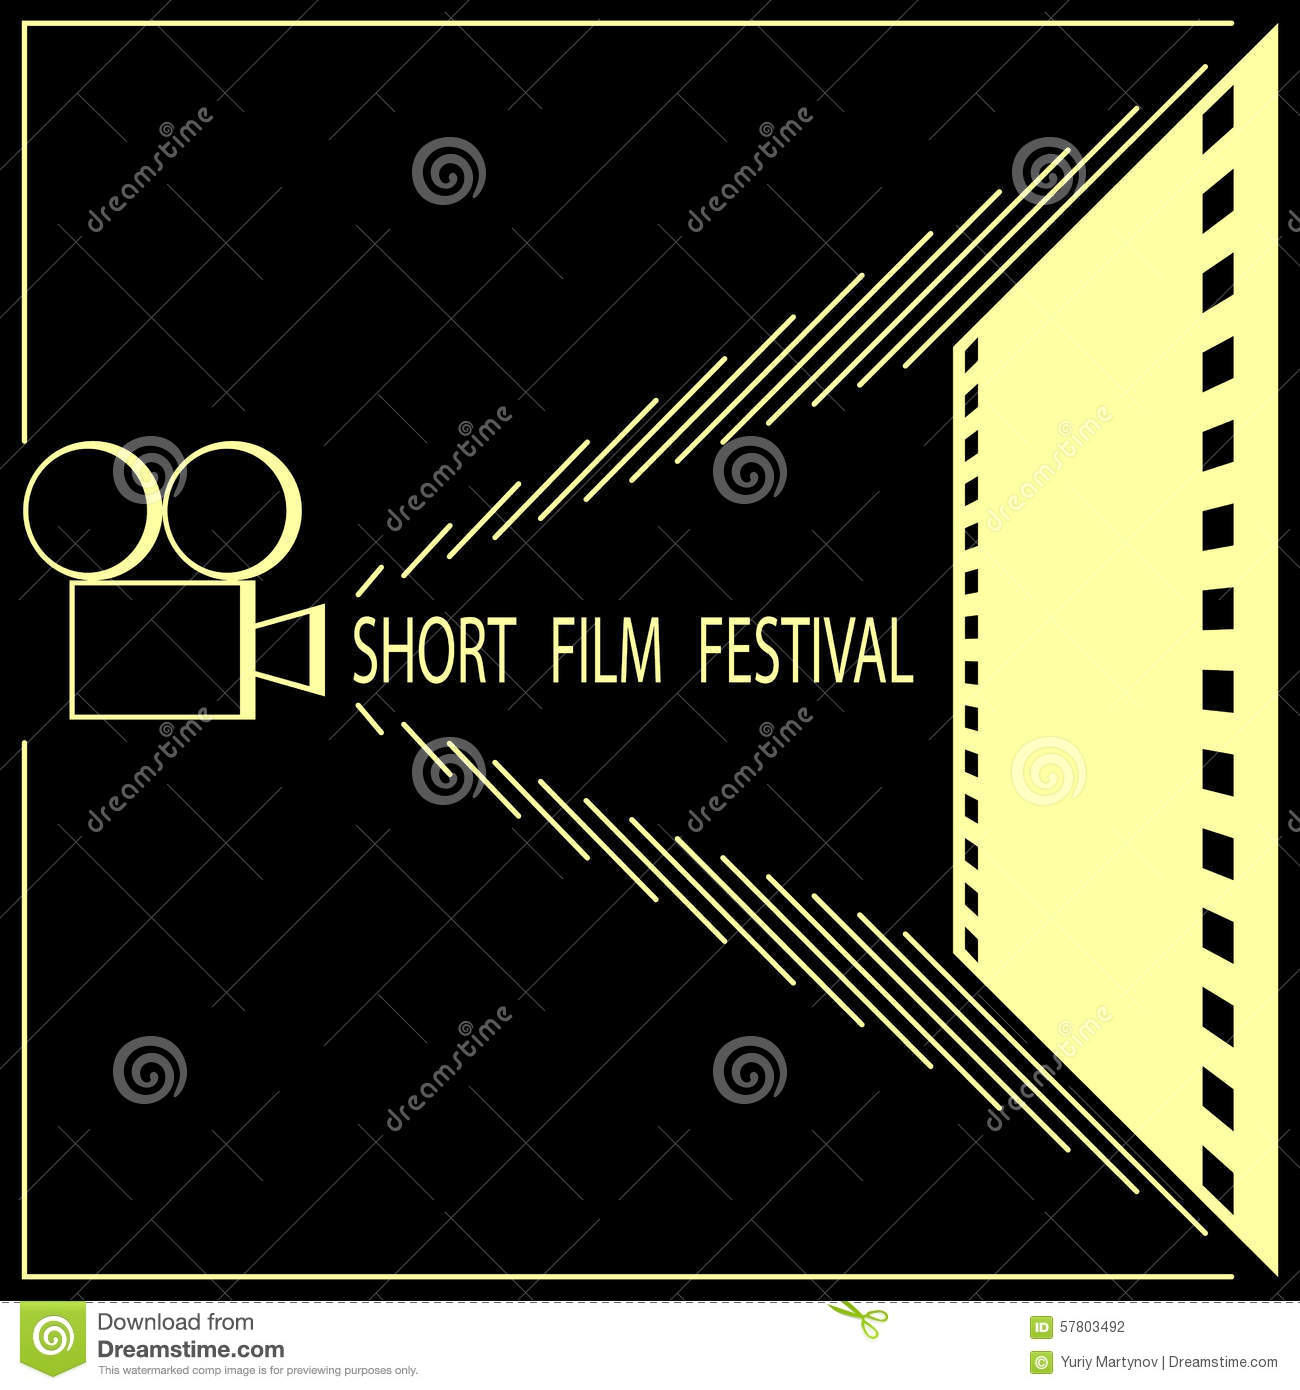 Short Film Festival, Cinema Film Festival Poster Stock Vector ...